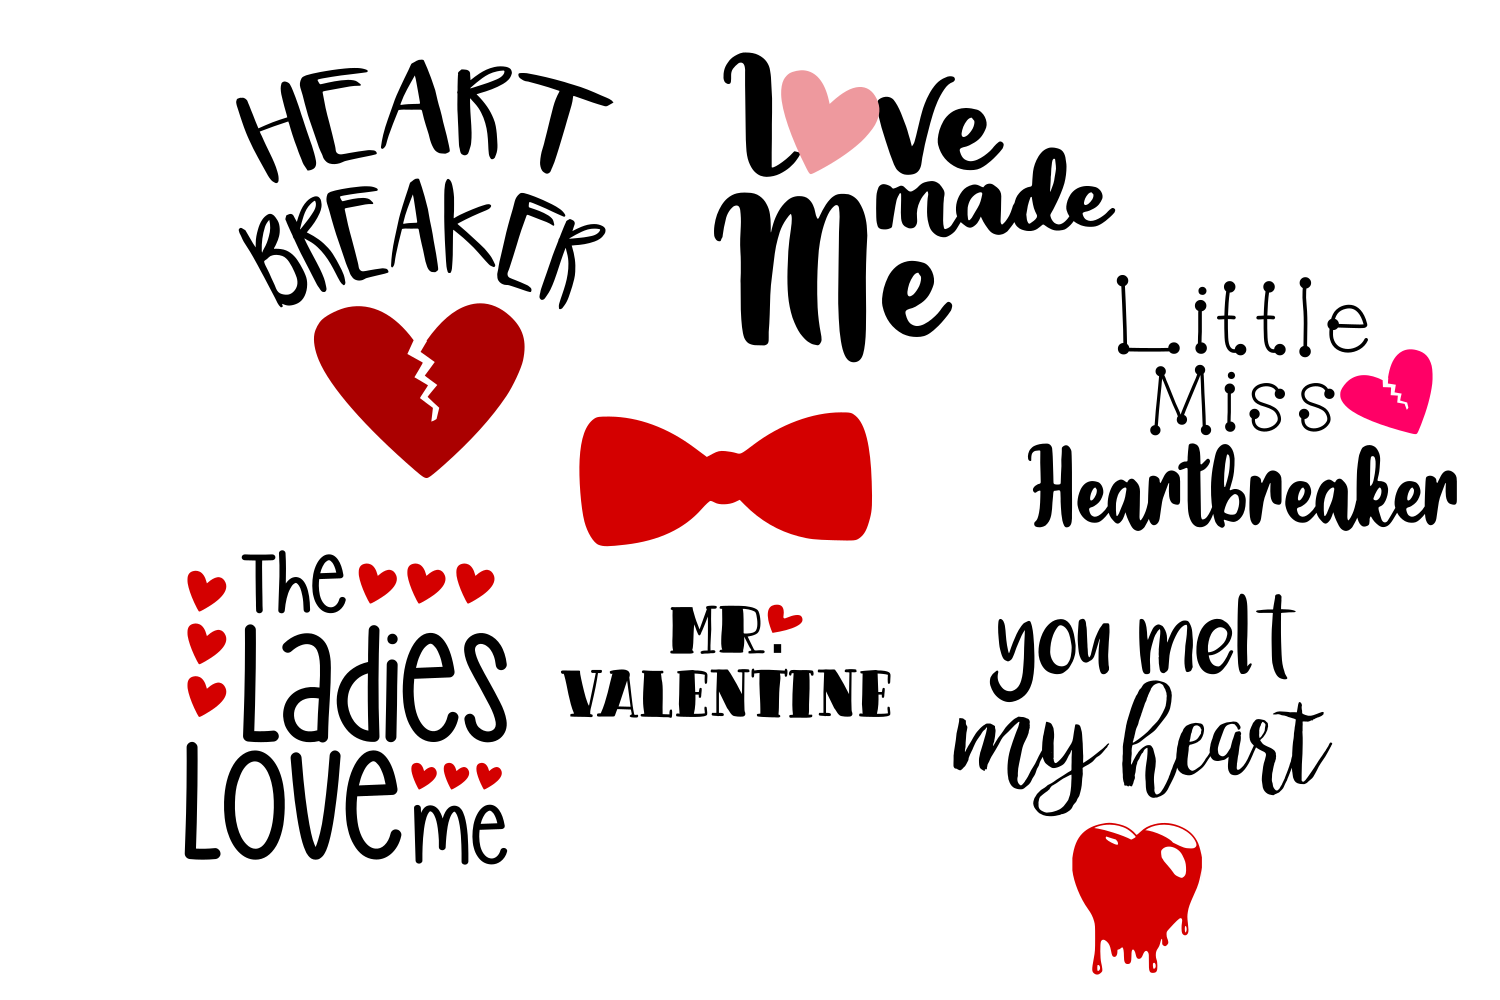 Download Free Valentine Bundle Graphic By Auntie Inappropriate Designs for Cricut Explore, Silhouette and other cutting machines.